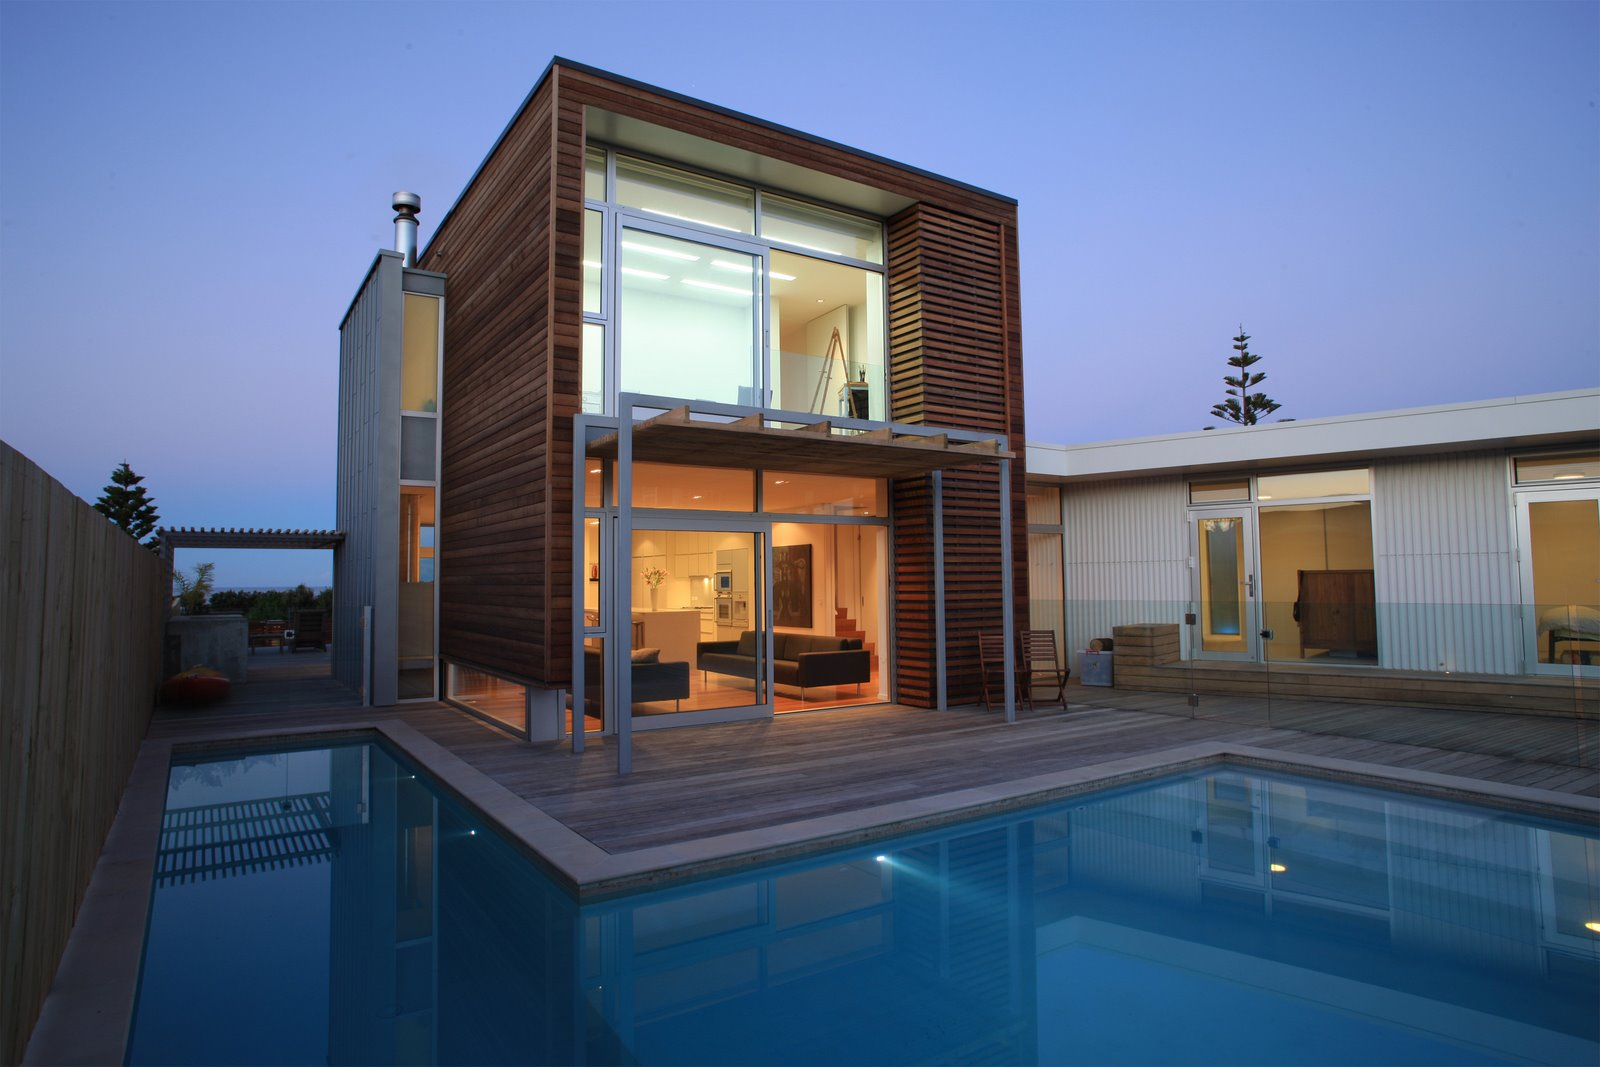 Modern Architecture House 8927 Hd Wallpapers in Architecture 1600x1067